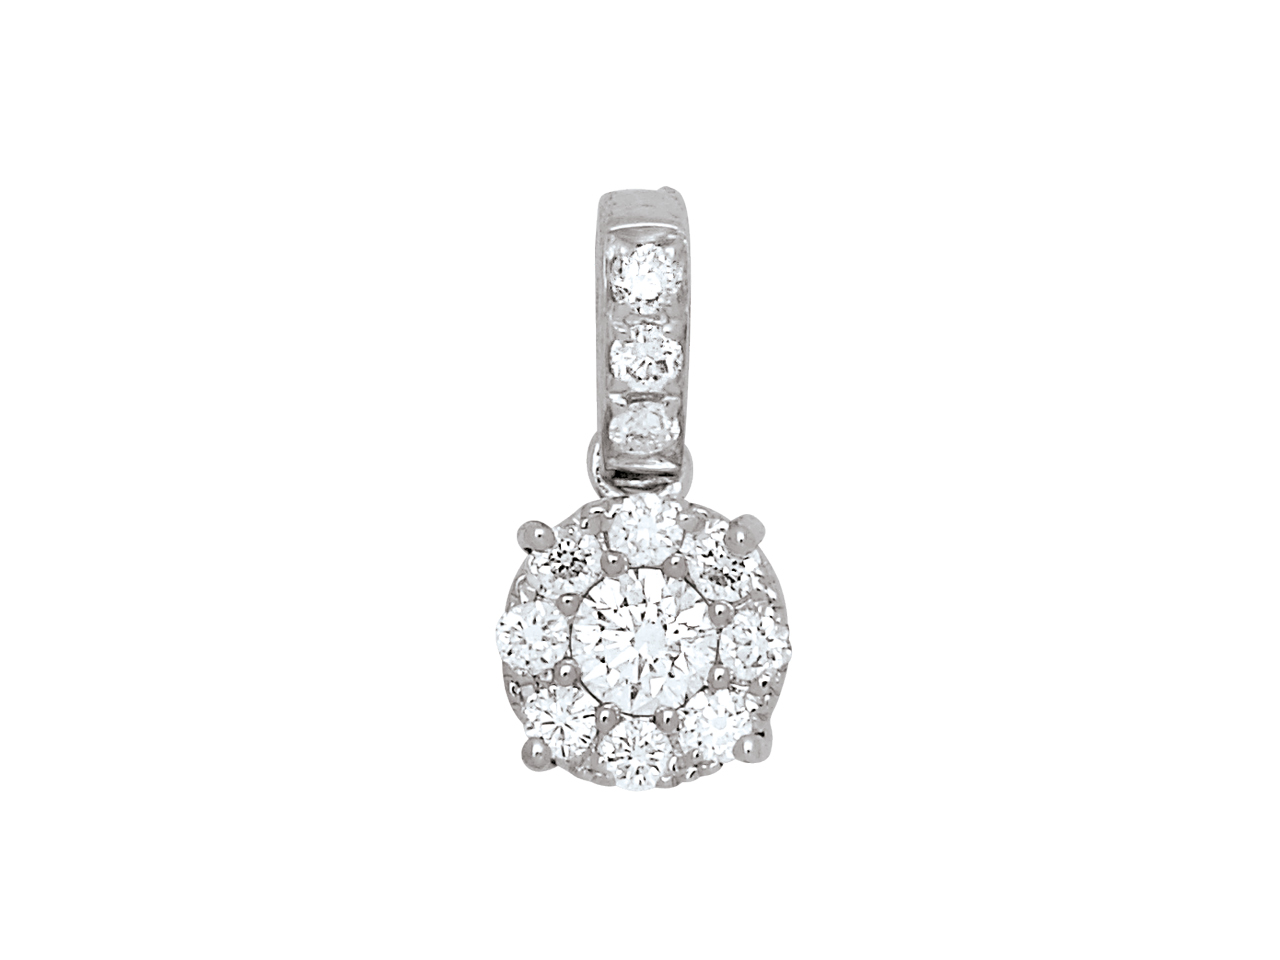 Pendentif Diamants sertis illusion 0,16ct, Or Gris 18k